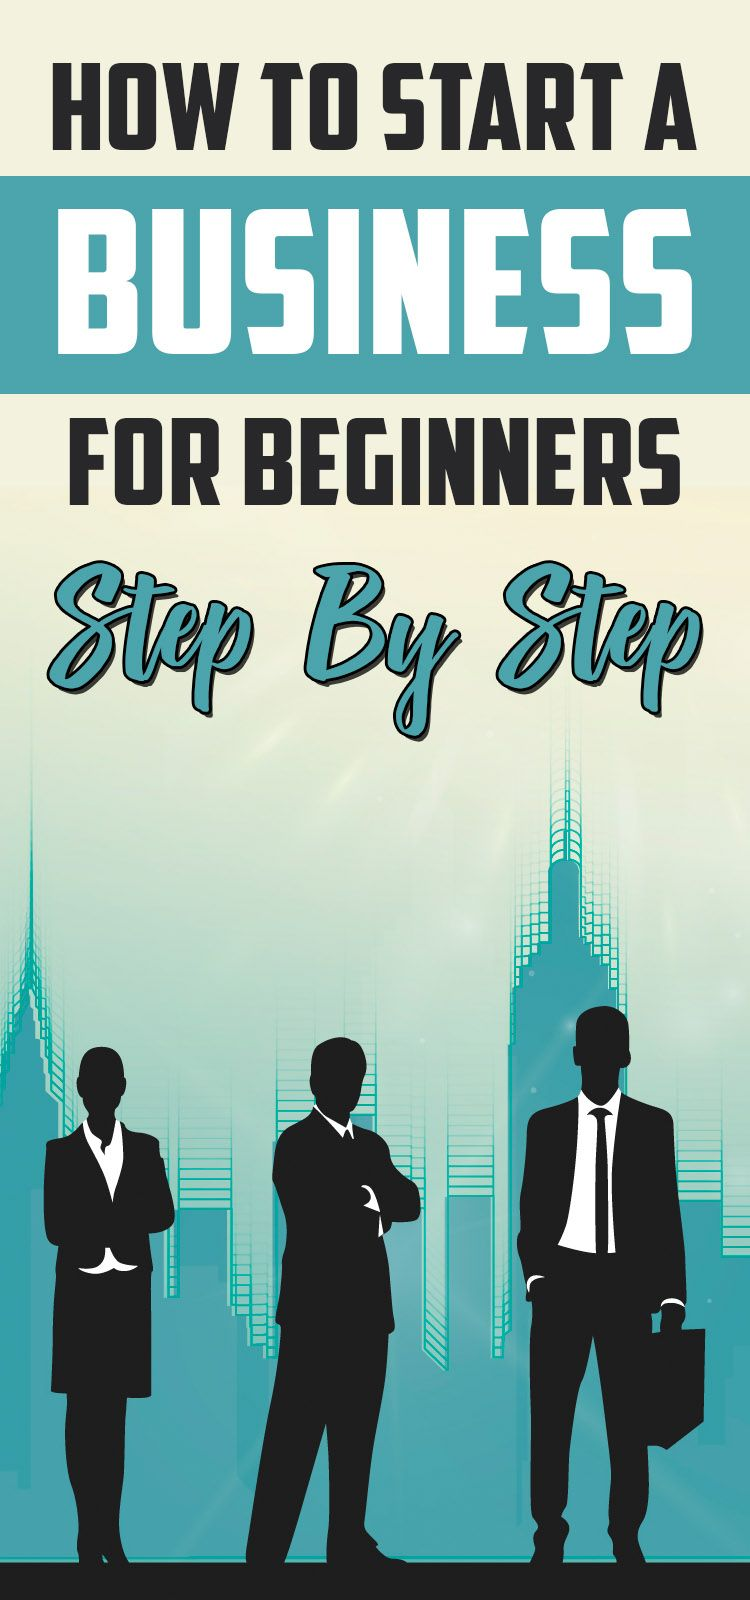 How To Start A Small Business For Beginners Learn S Kids Businessideas Smallbusiness